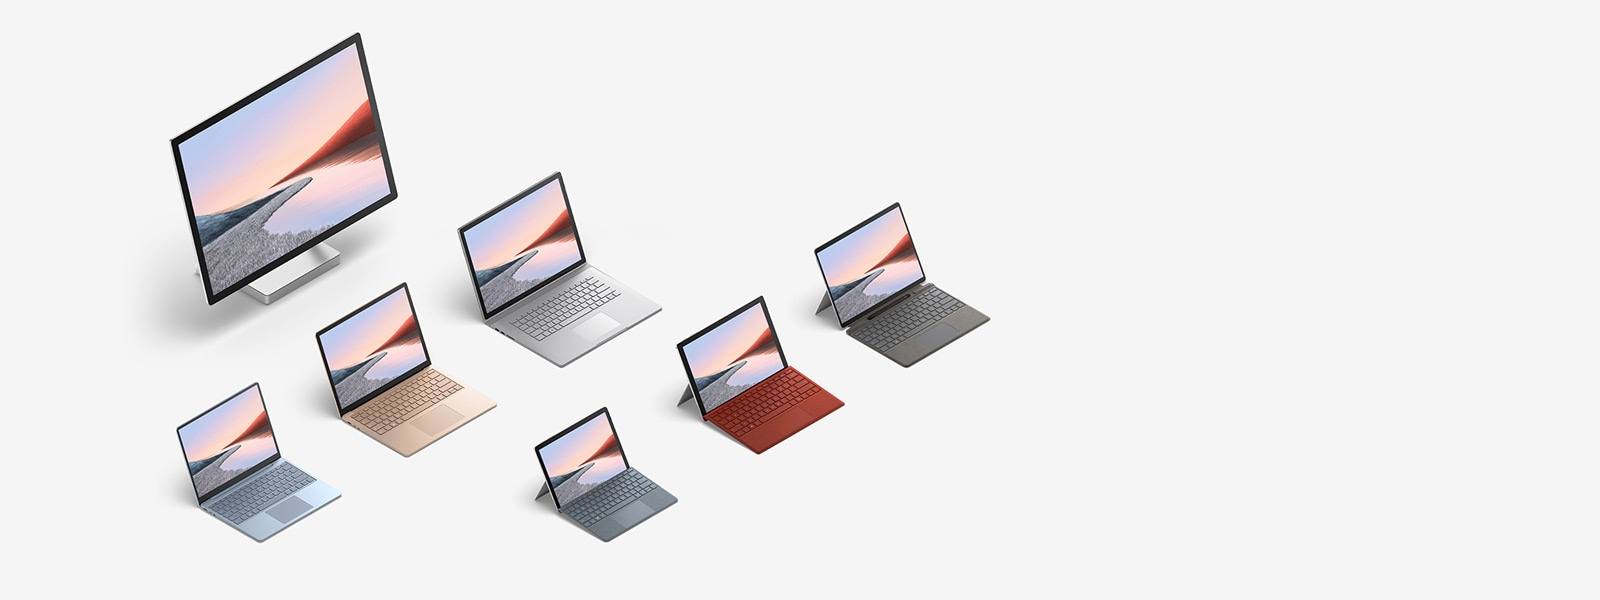 Multiple Surface computers - Surface Pro X, Surface Go 2 and Surface Laptop Go